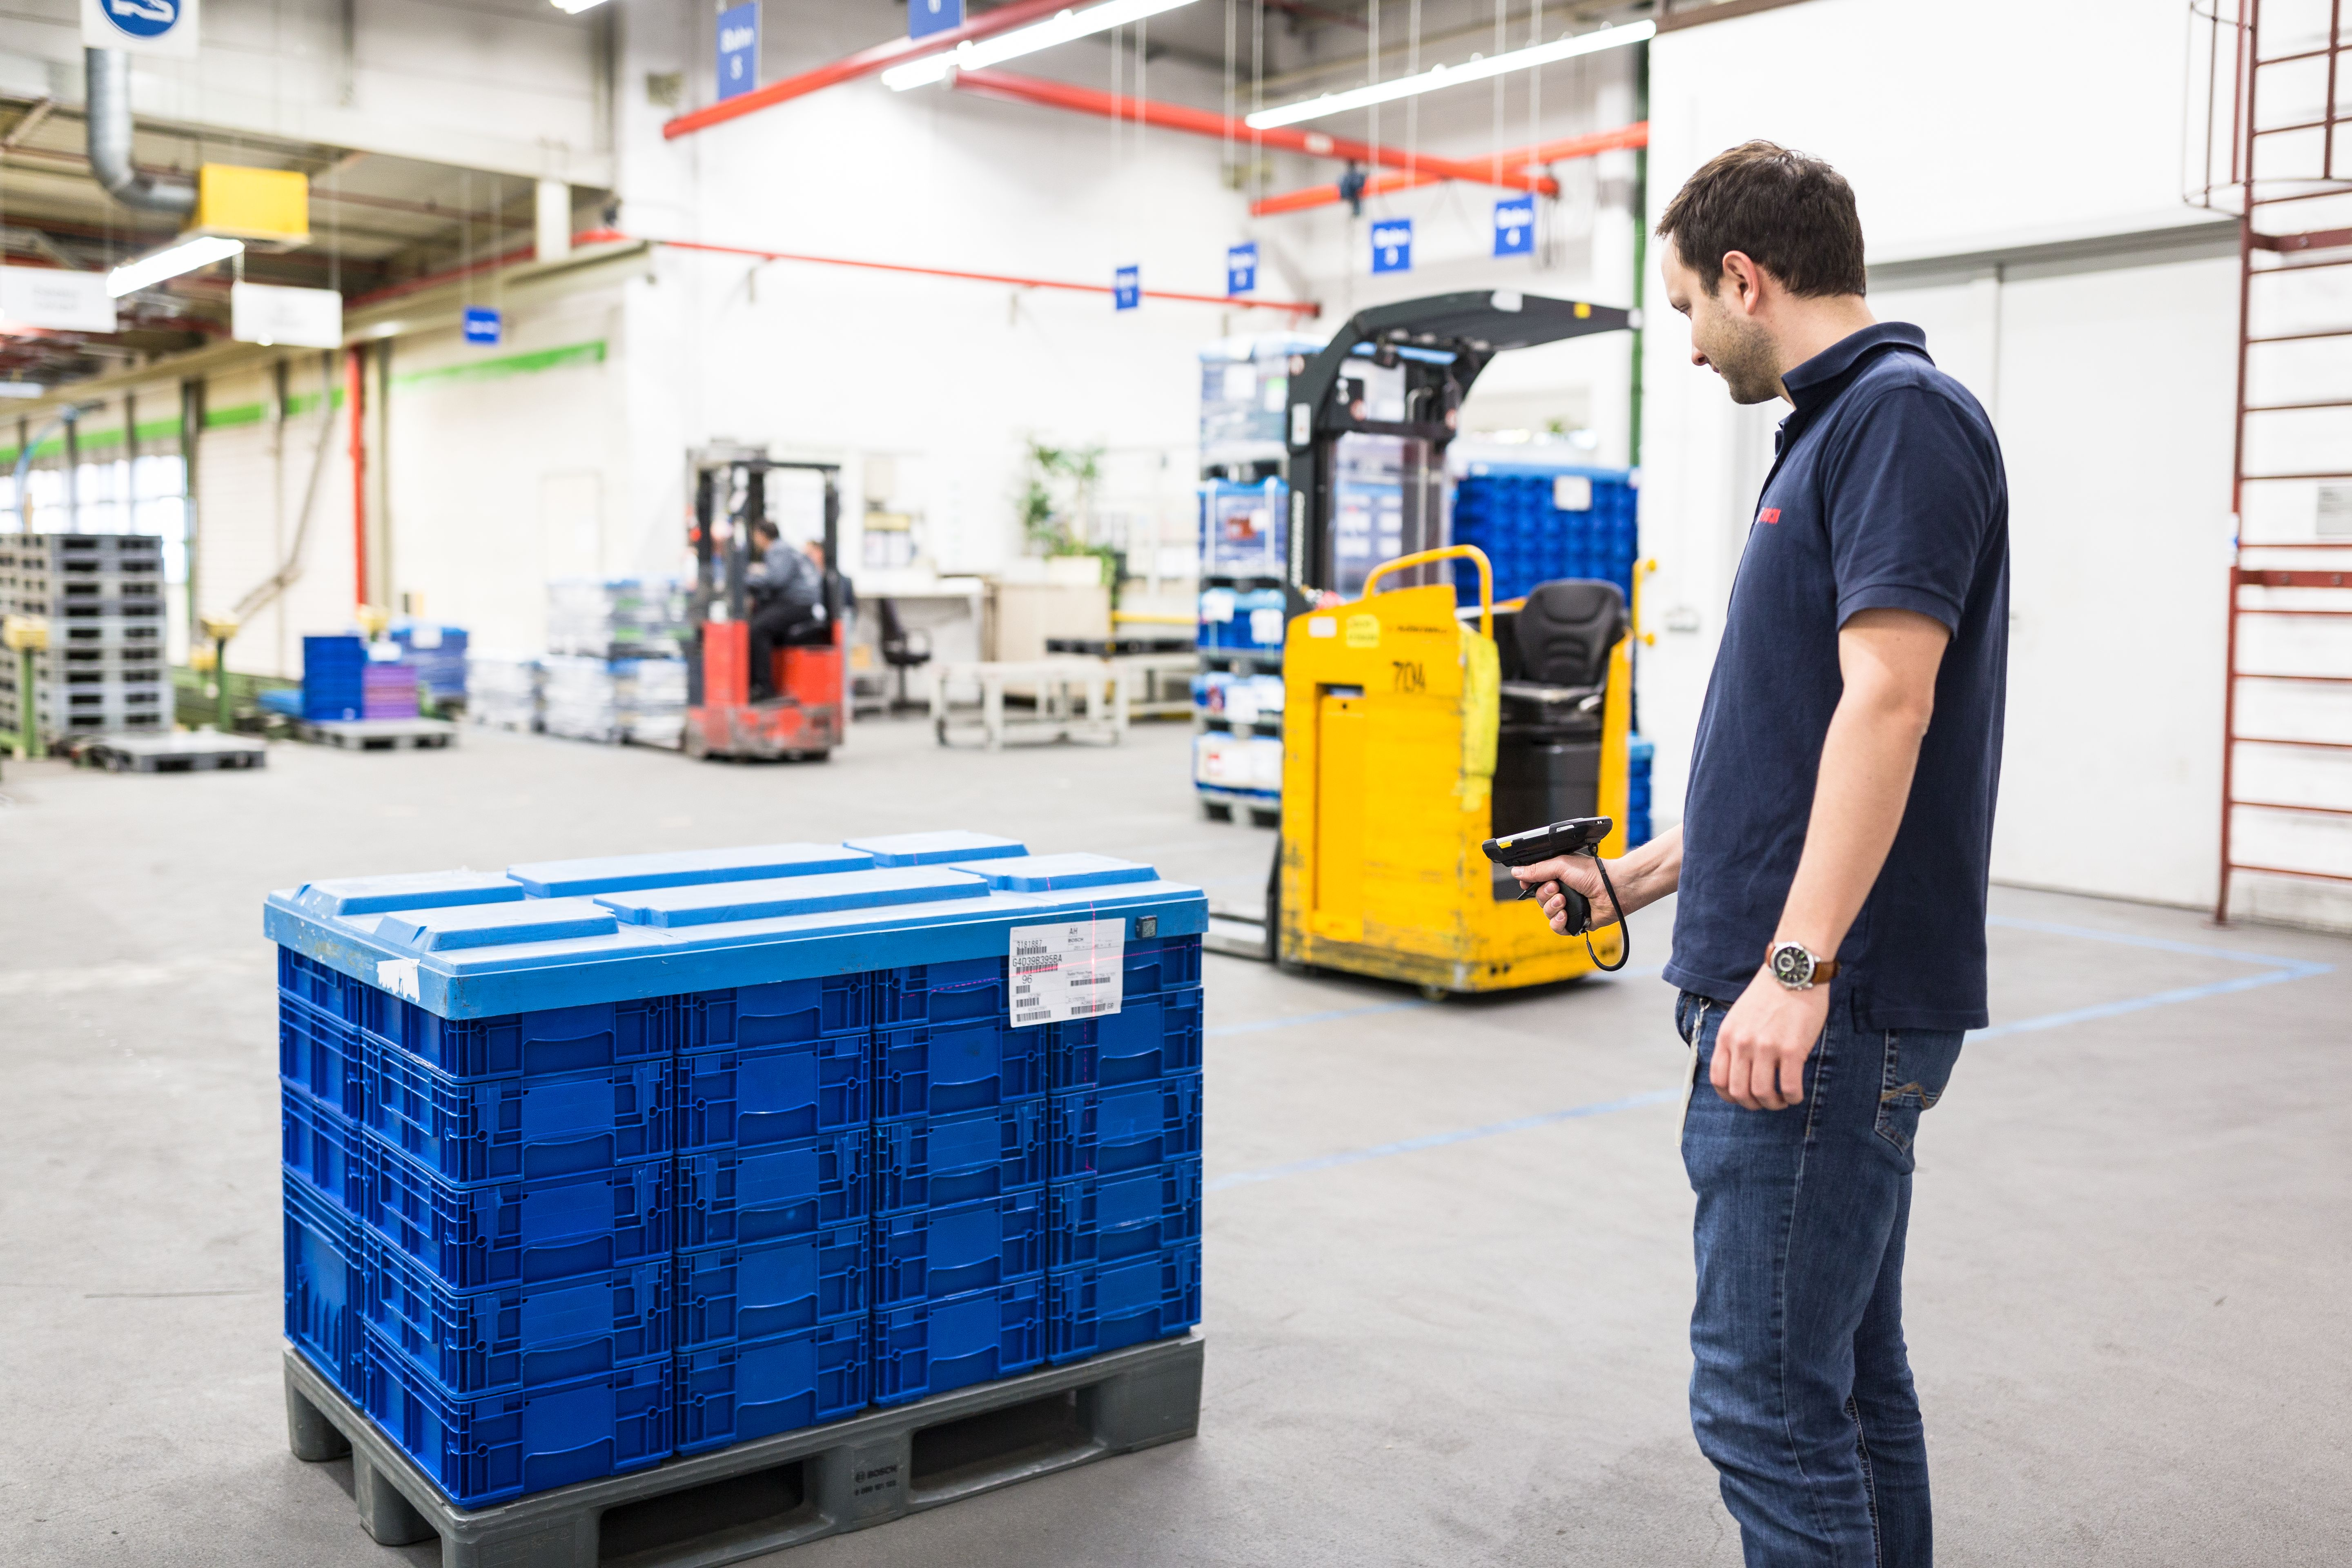 What pragmatic real-time logistics is all about - Bosch